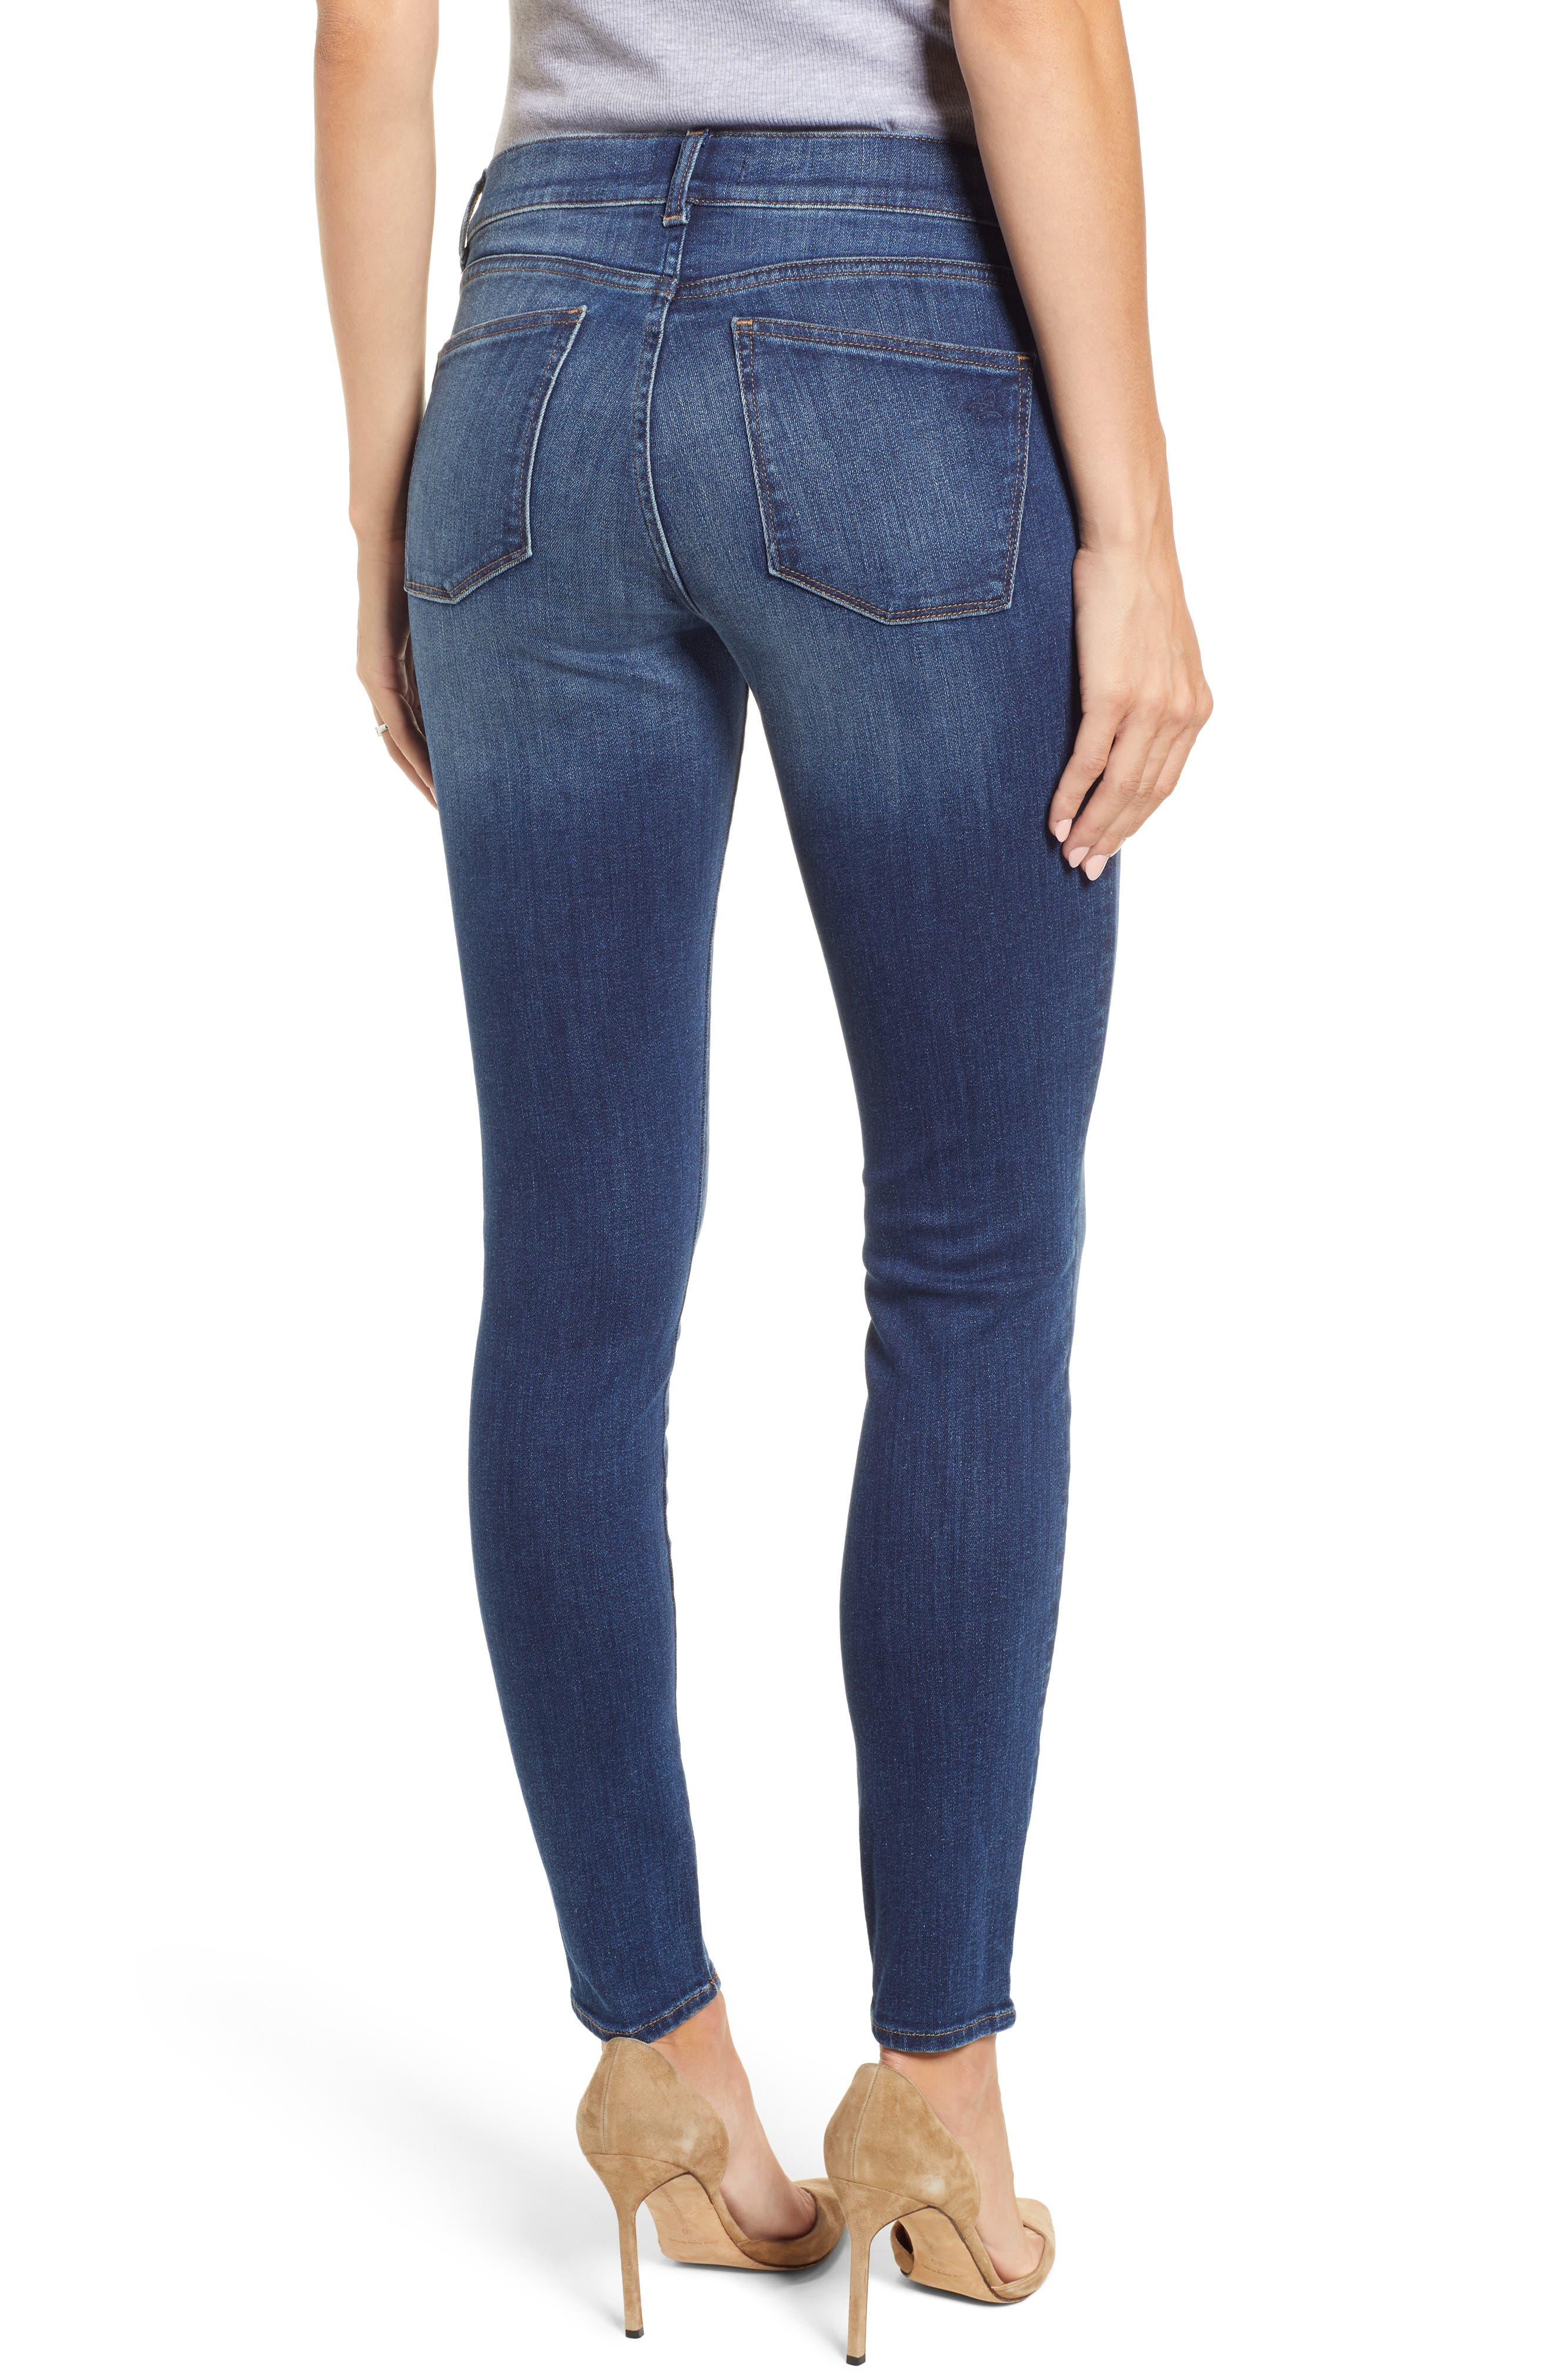 Florence Maternity Skinny Jeans,                             Alternate thumbnail 2, color,                             001